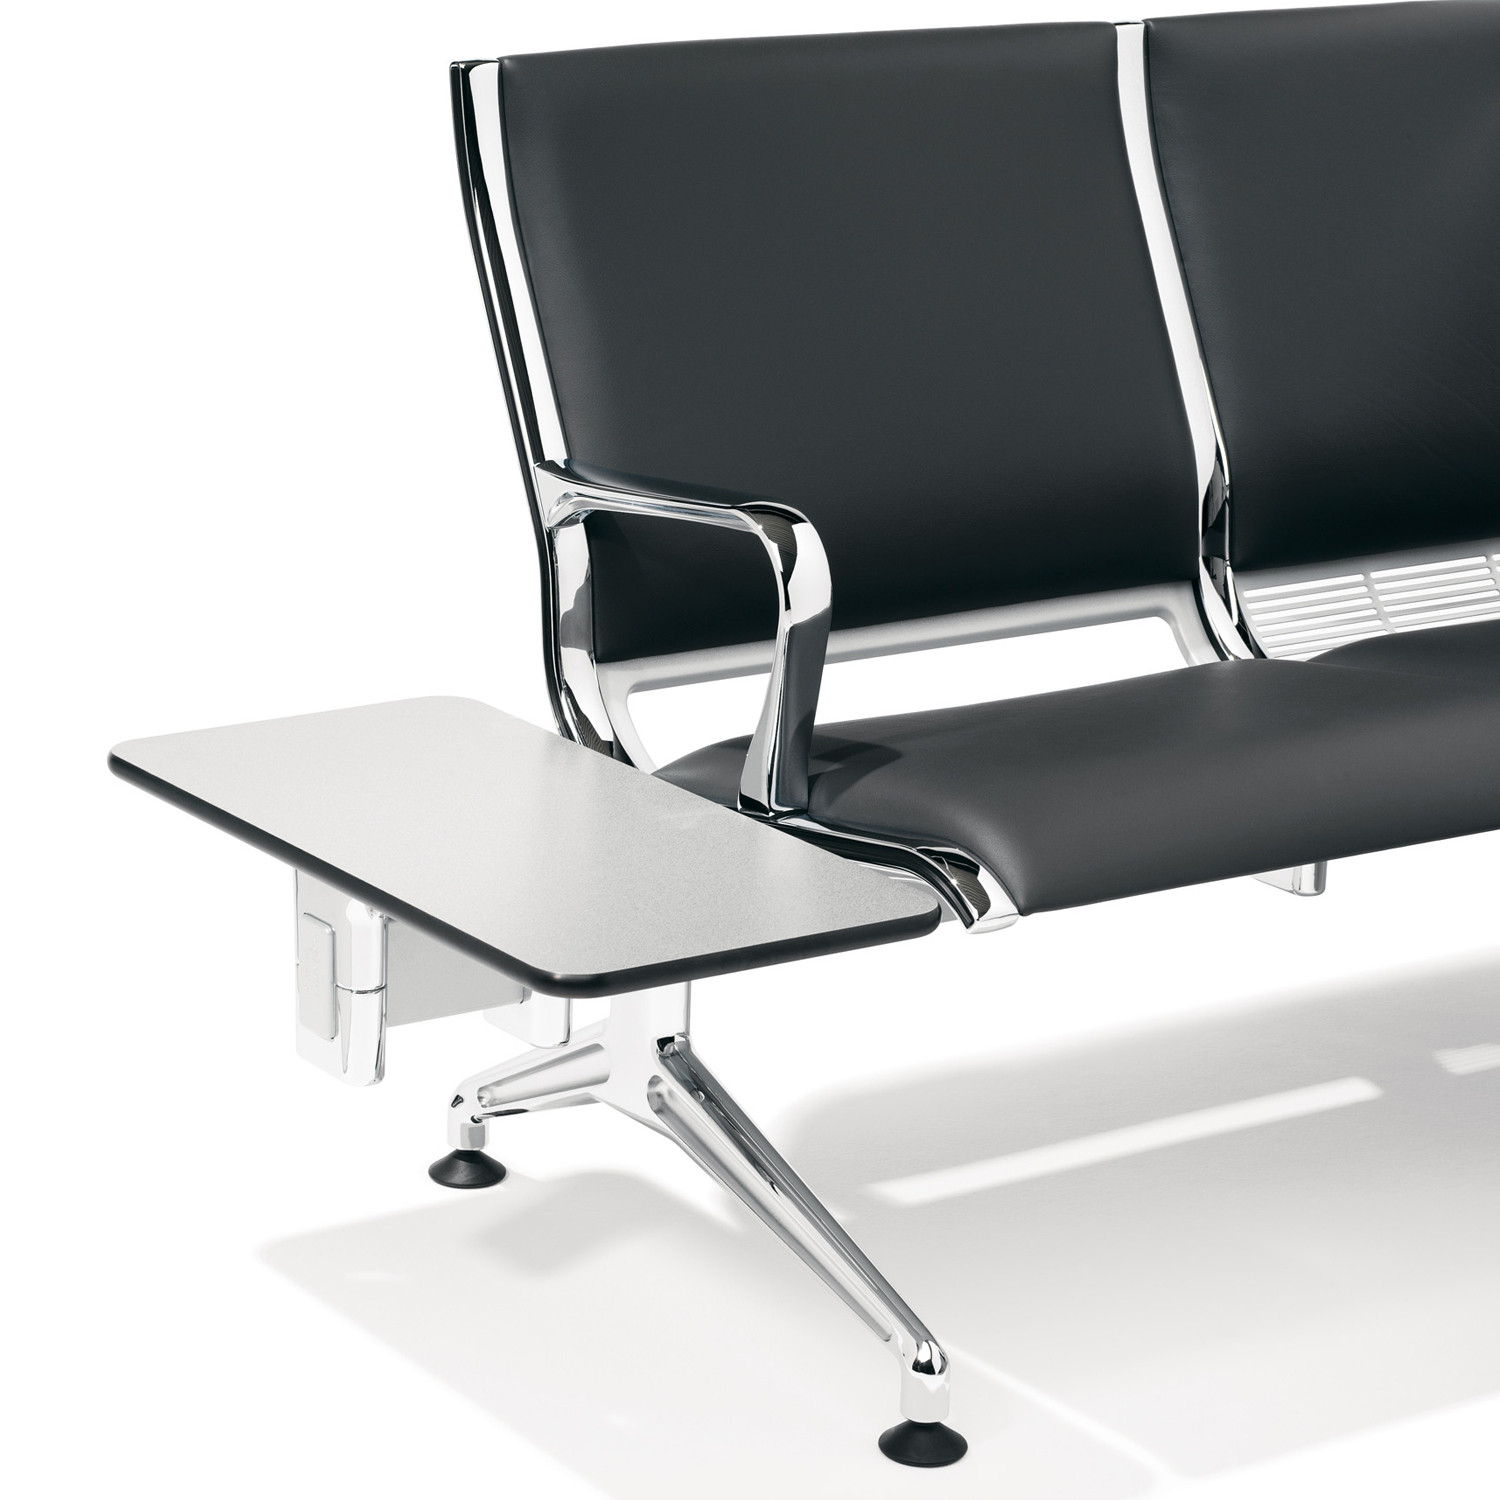 7050 Terminal Seats with side rectangular table